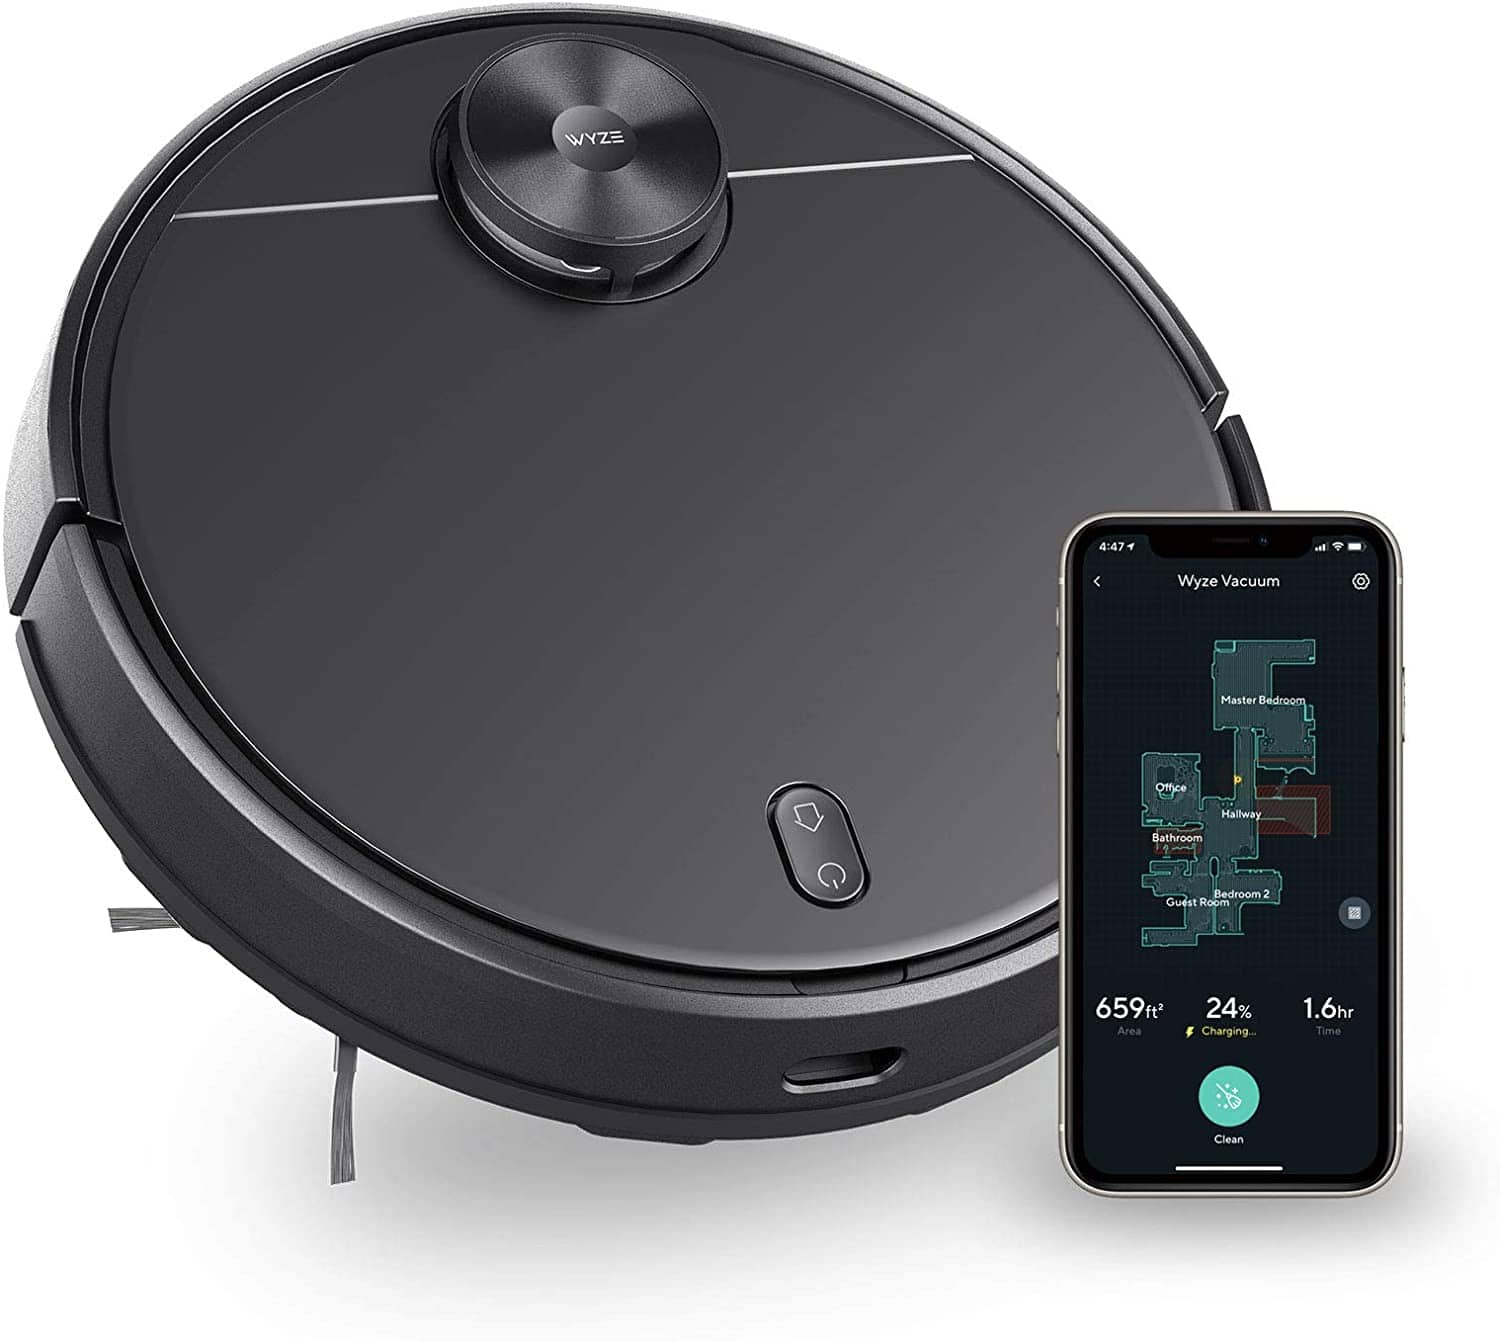 Wyze 2100Pa/ Wi-Fi Connected/ Self-Charging Robot Vacuum with LIDAR Mapping Technology - $254.99 w/ free shipping